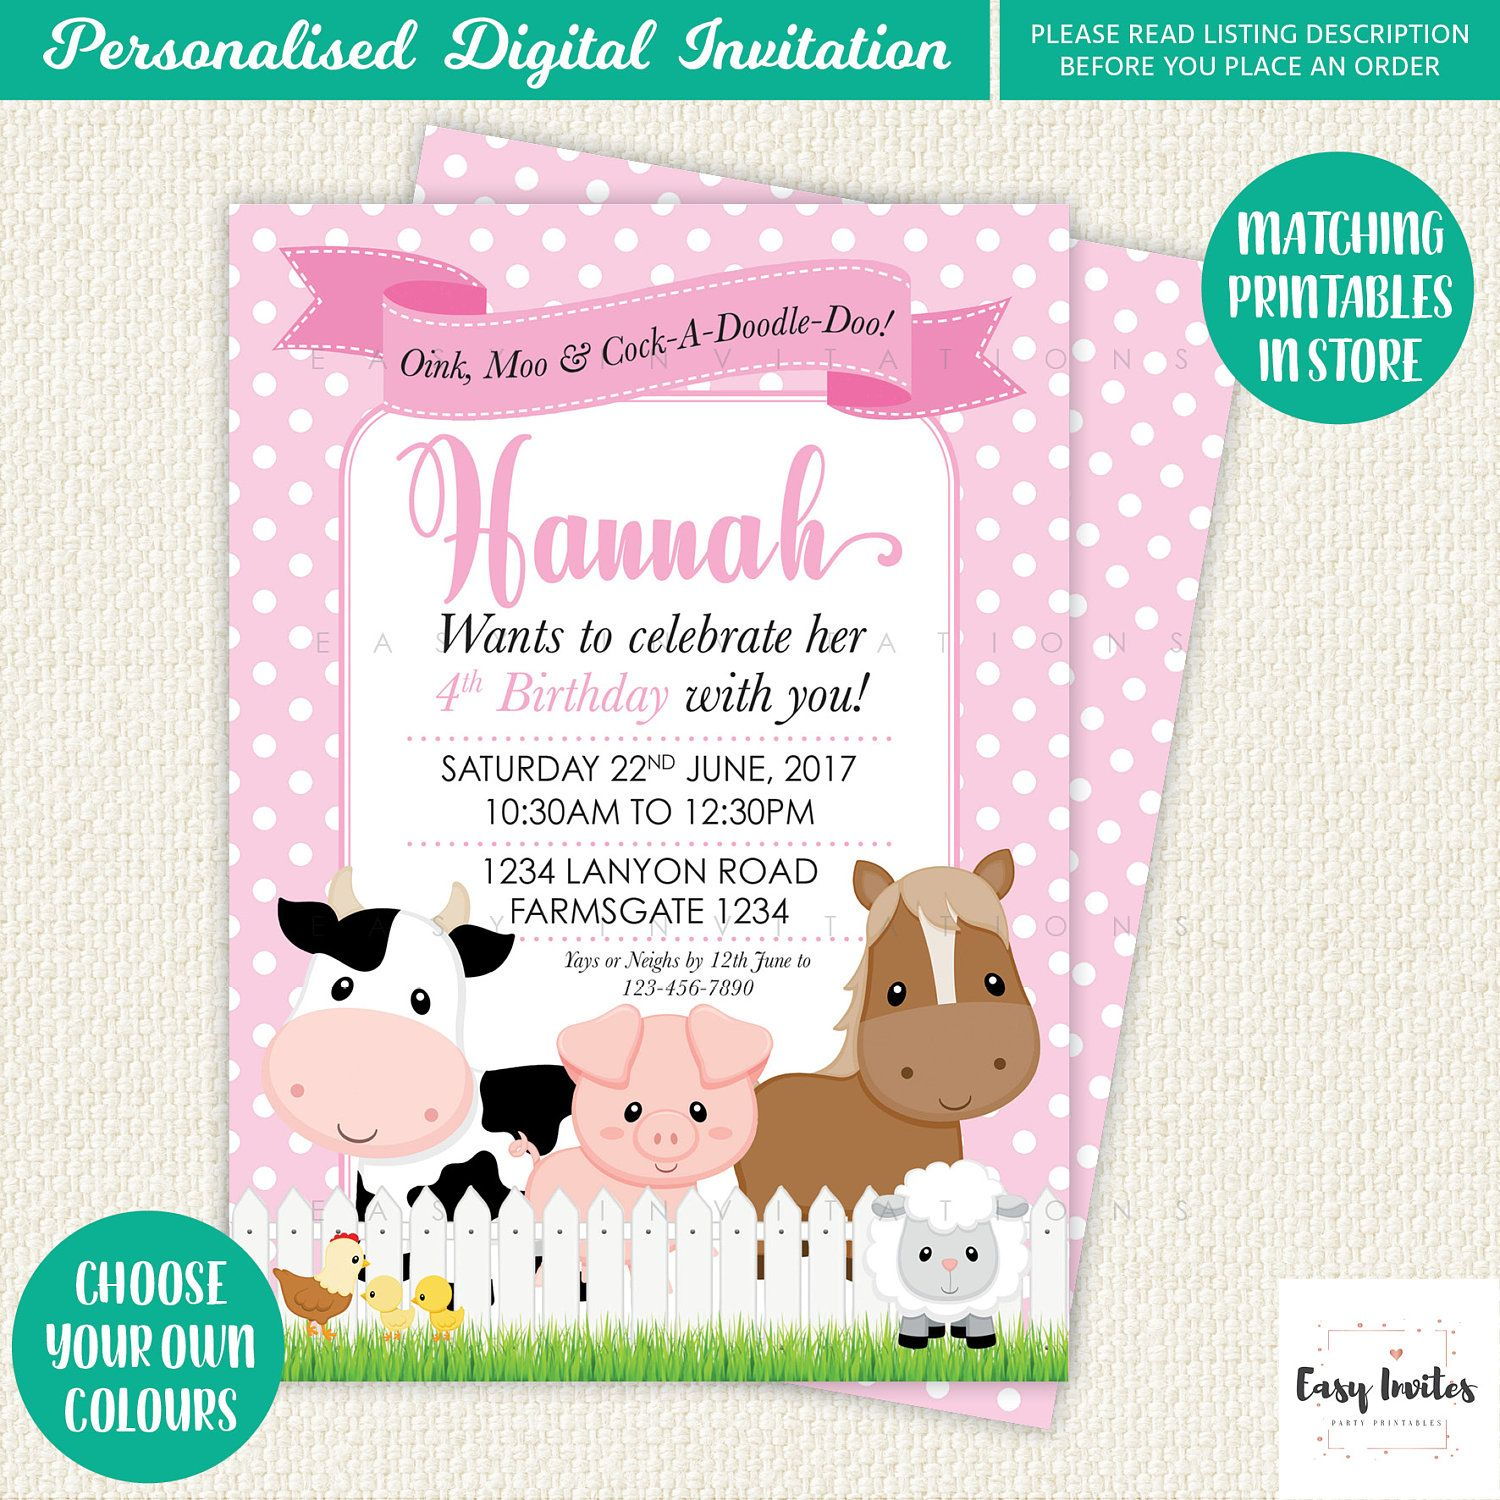 Farm Party invitation, Farm Party, Farm Birthday Invitation, farm birthday party, barnyard party